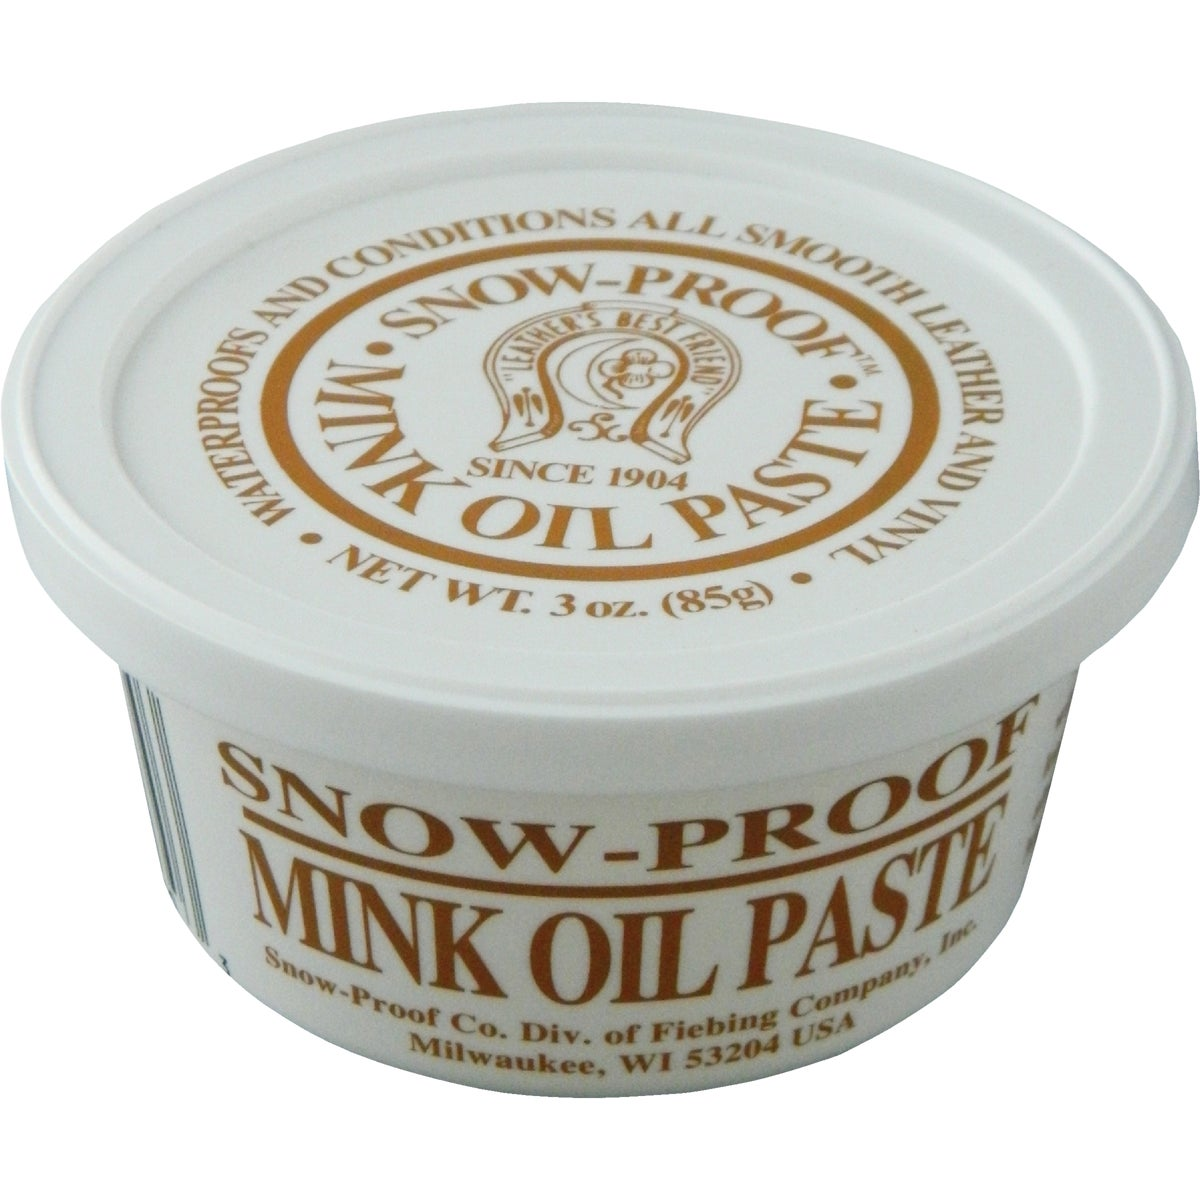 3OZ SNOW PROOF MINK OIL - SNMO00P003Z by Fiebing